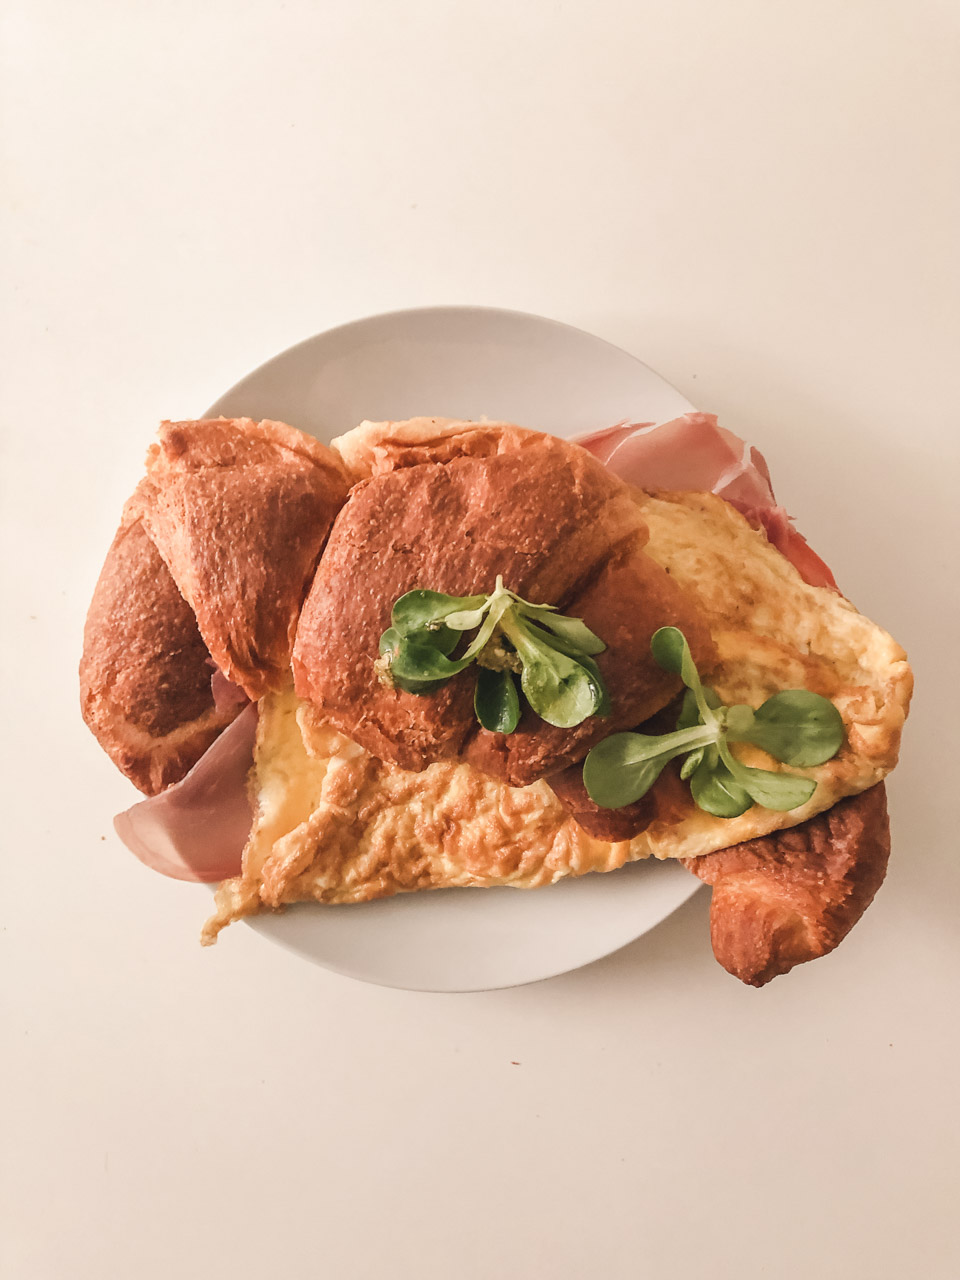 A croissant stuffed with an omelette on a plate